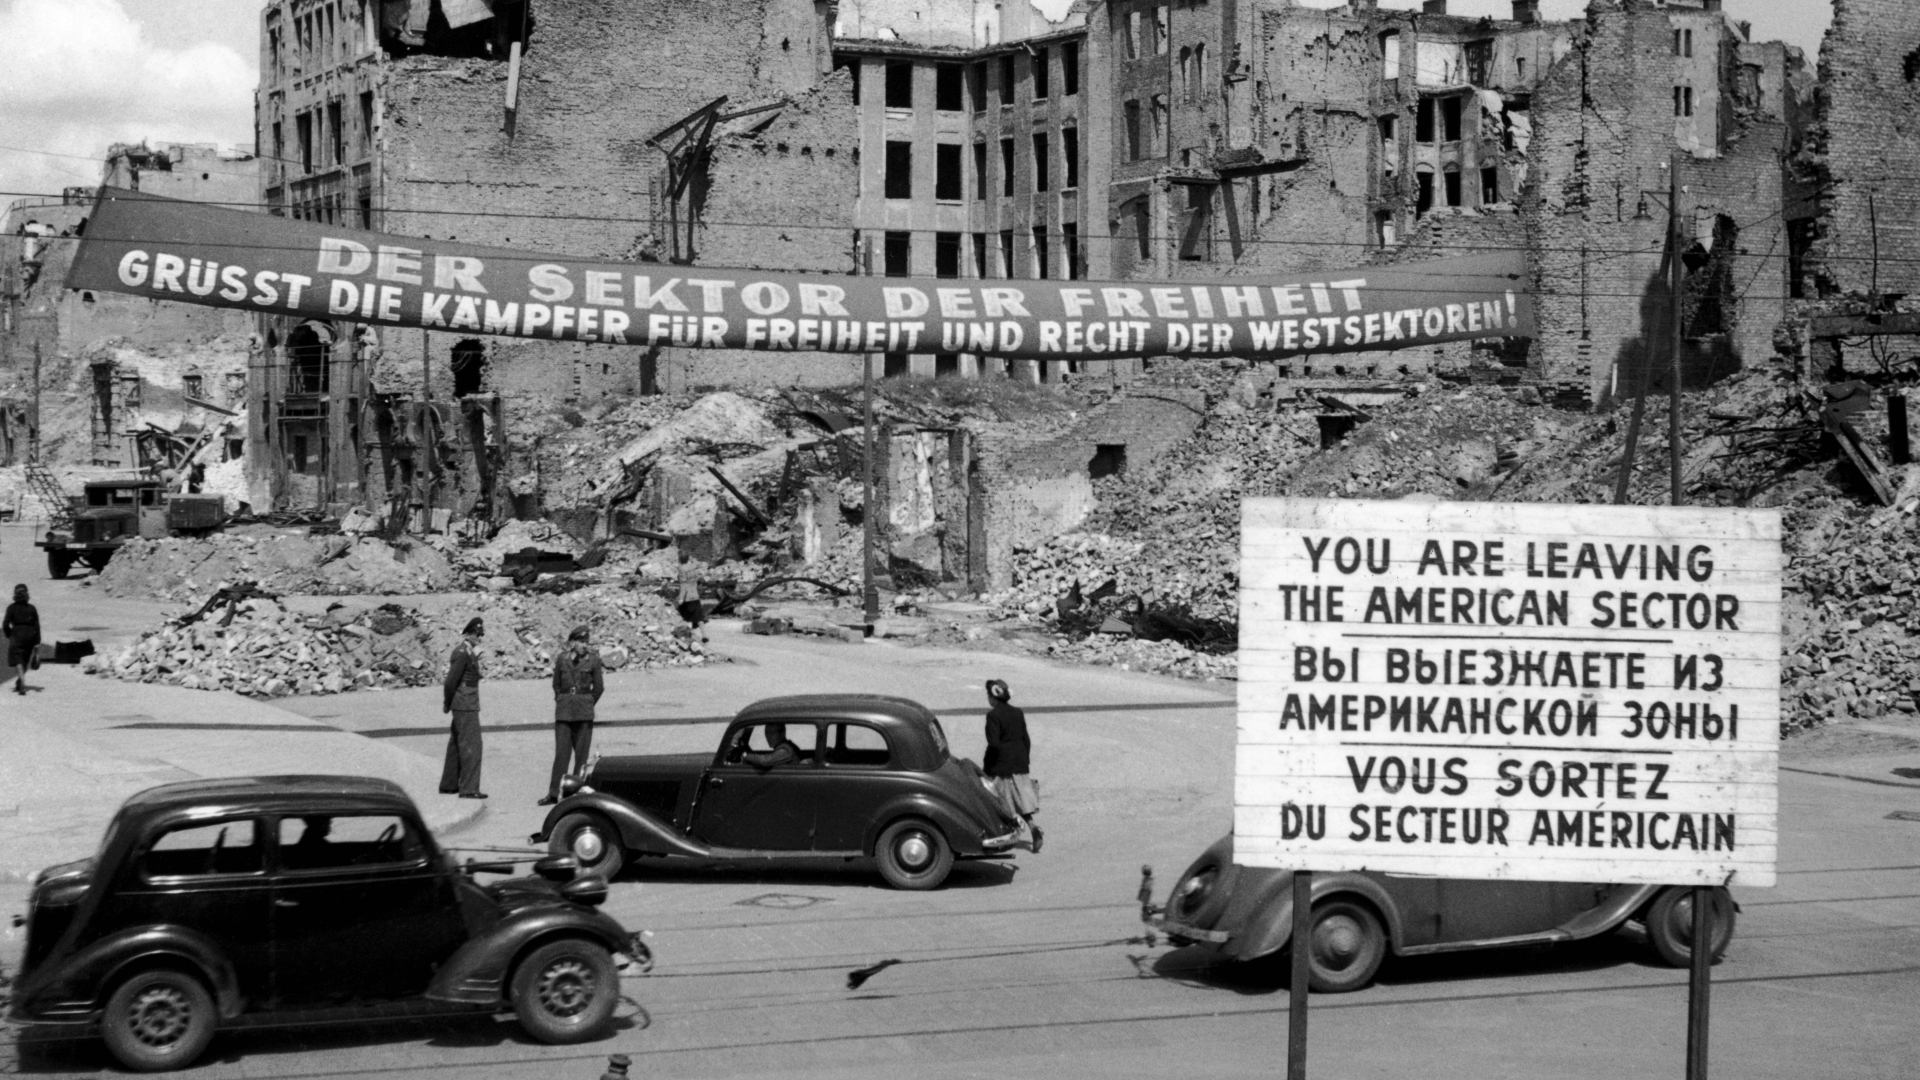 Road blocks from the Russian-American sector boundary in Germany, 1949. (Credit: Keystone/Getty Images)